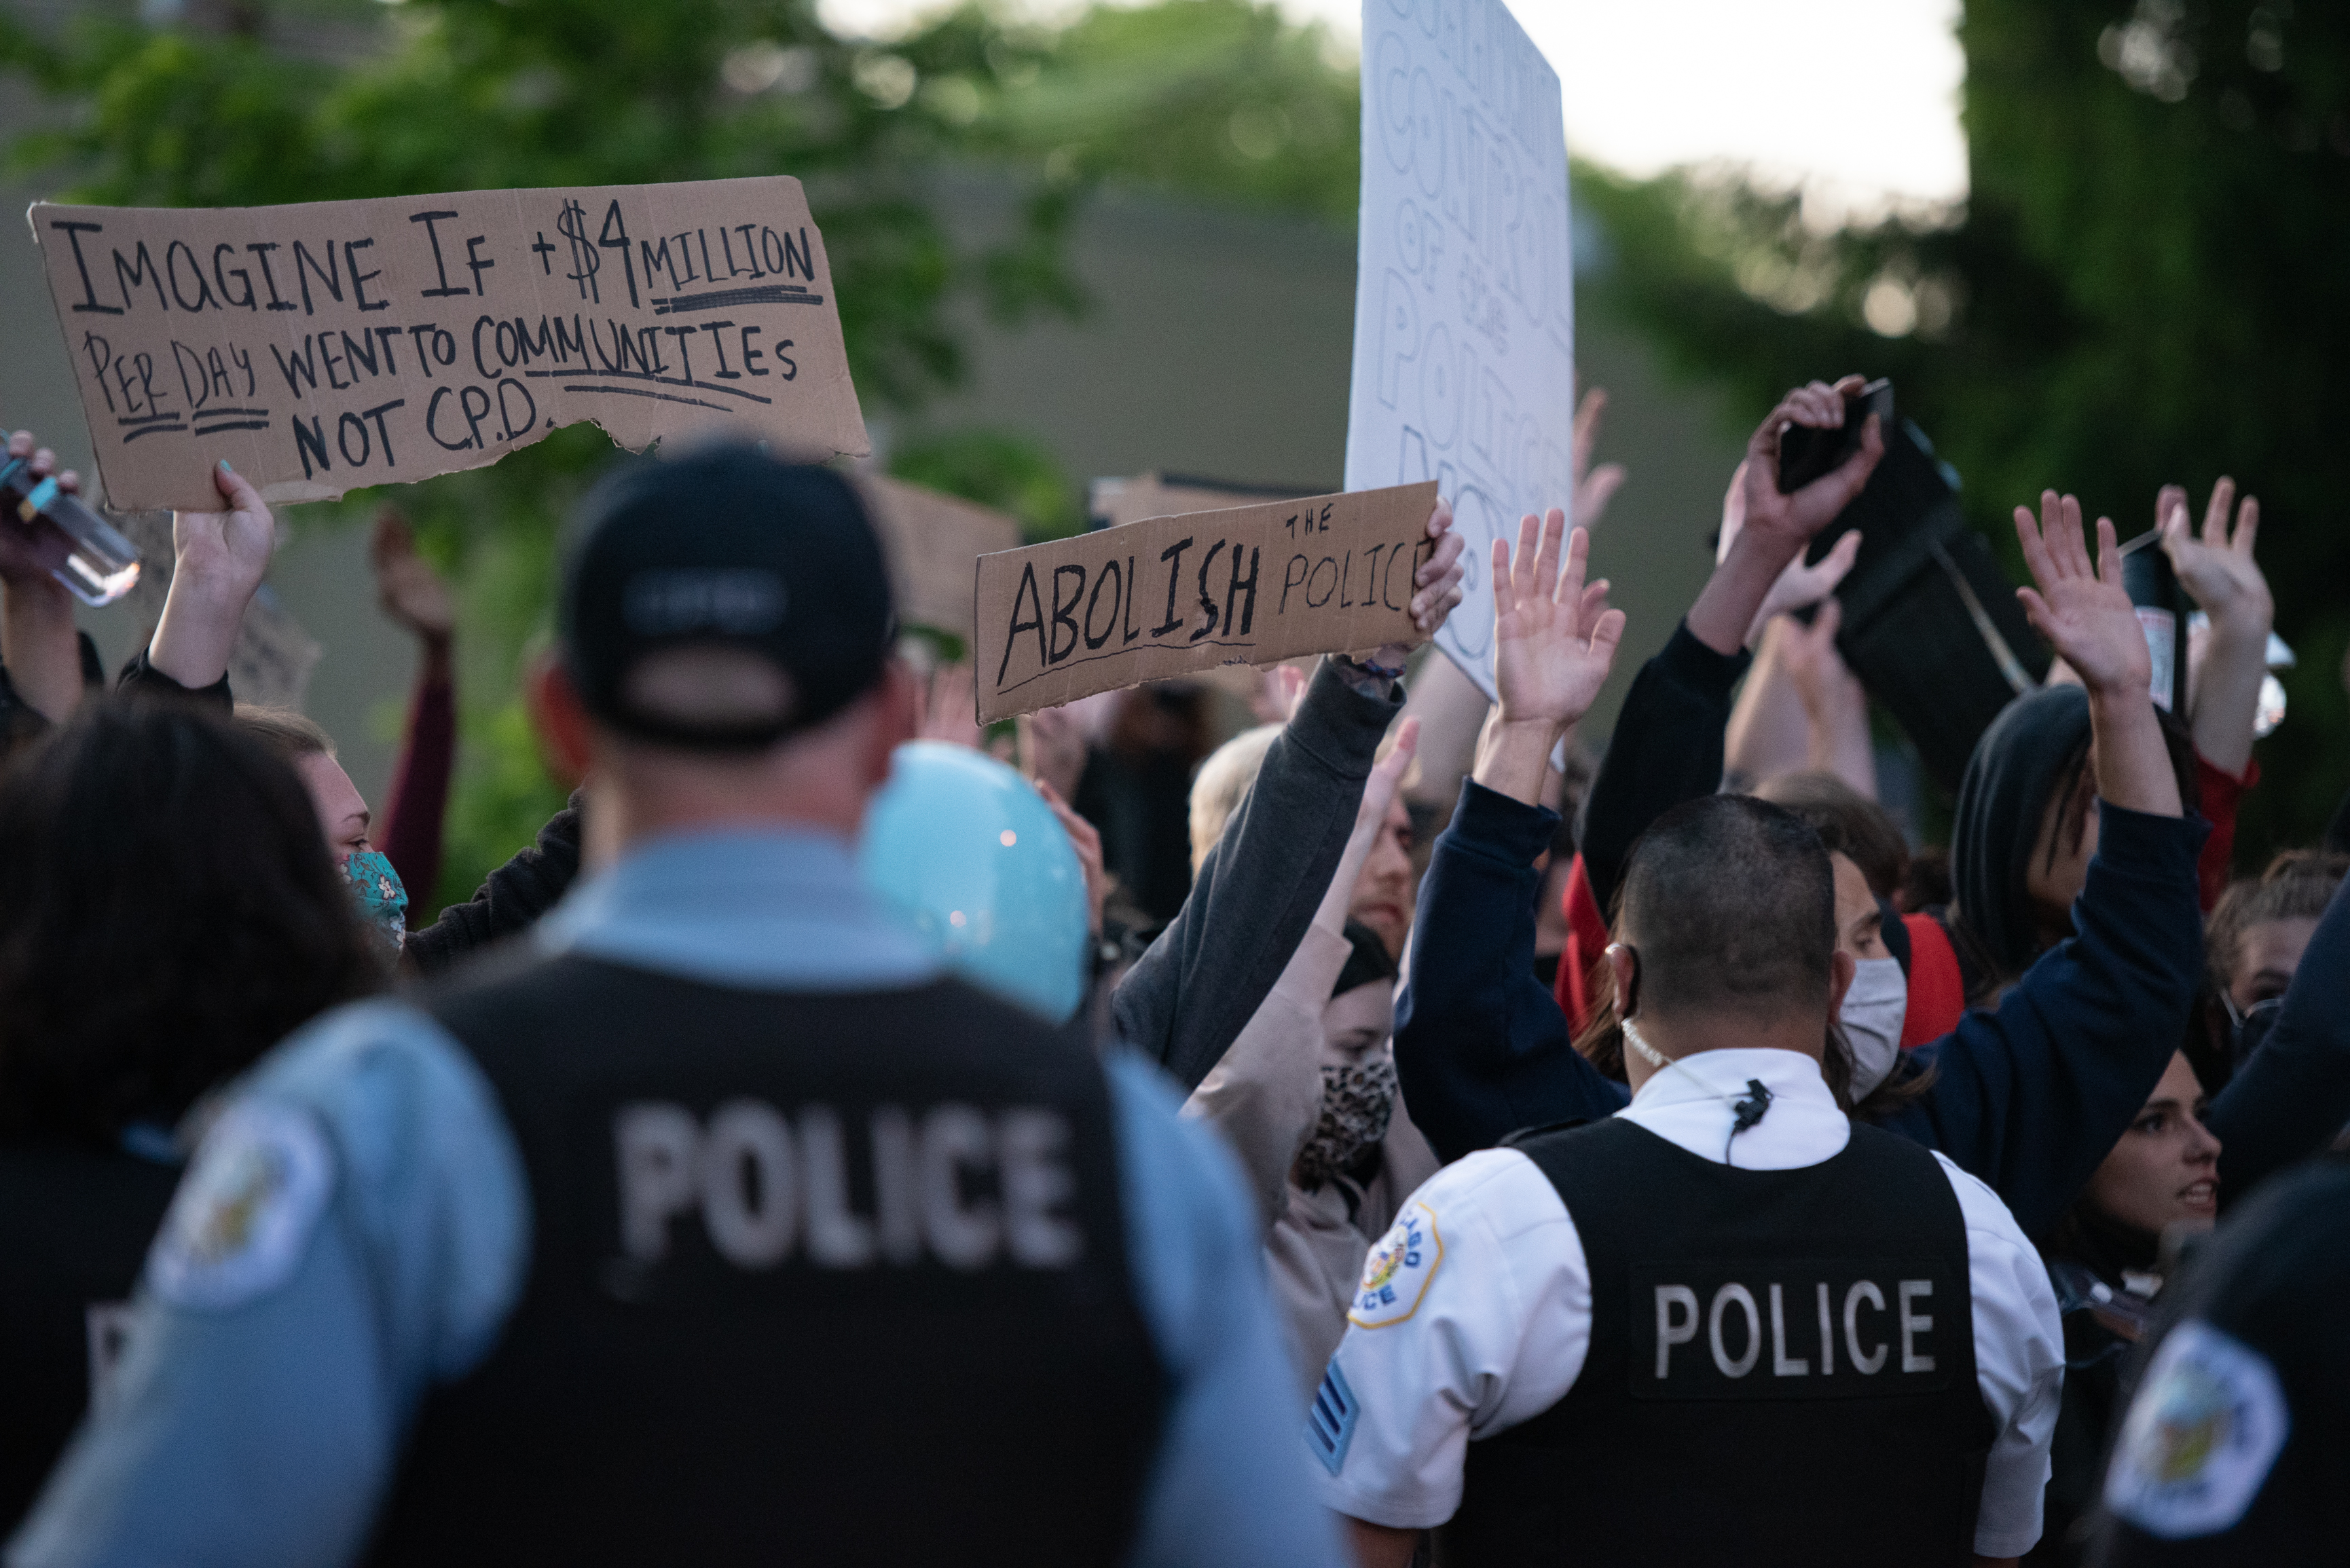 Police attempt to clear protesters onto the sidewalks in Lincoln Park as another night of chaos hit Chicago, Illinois on May 31, 2020. | Colin Boyle/Block Club Chicago